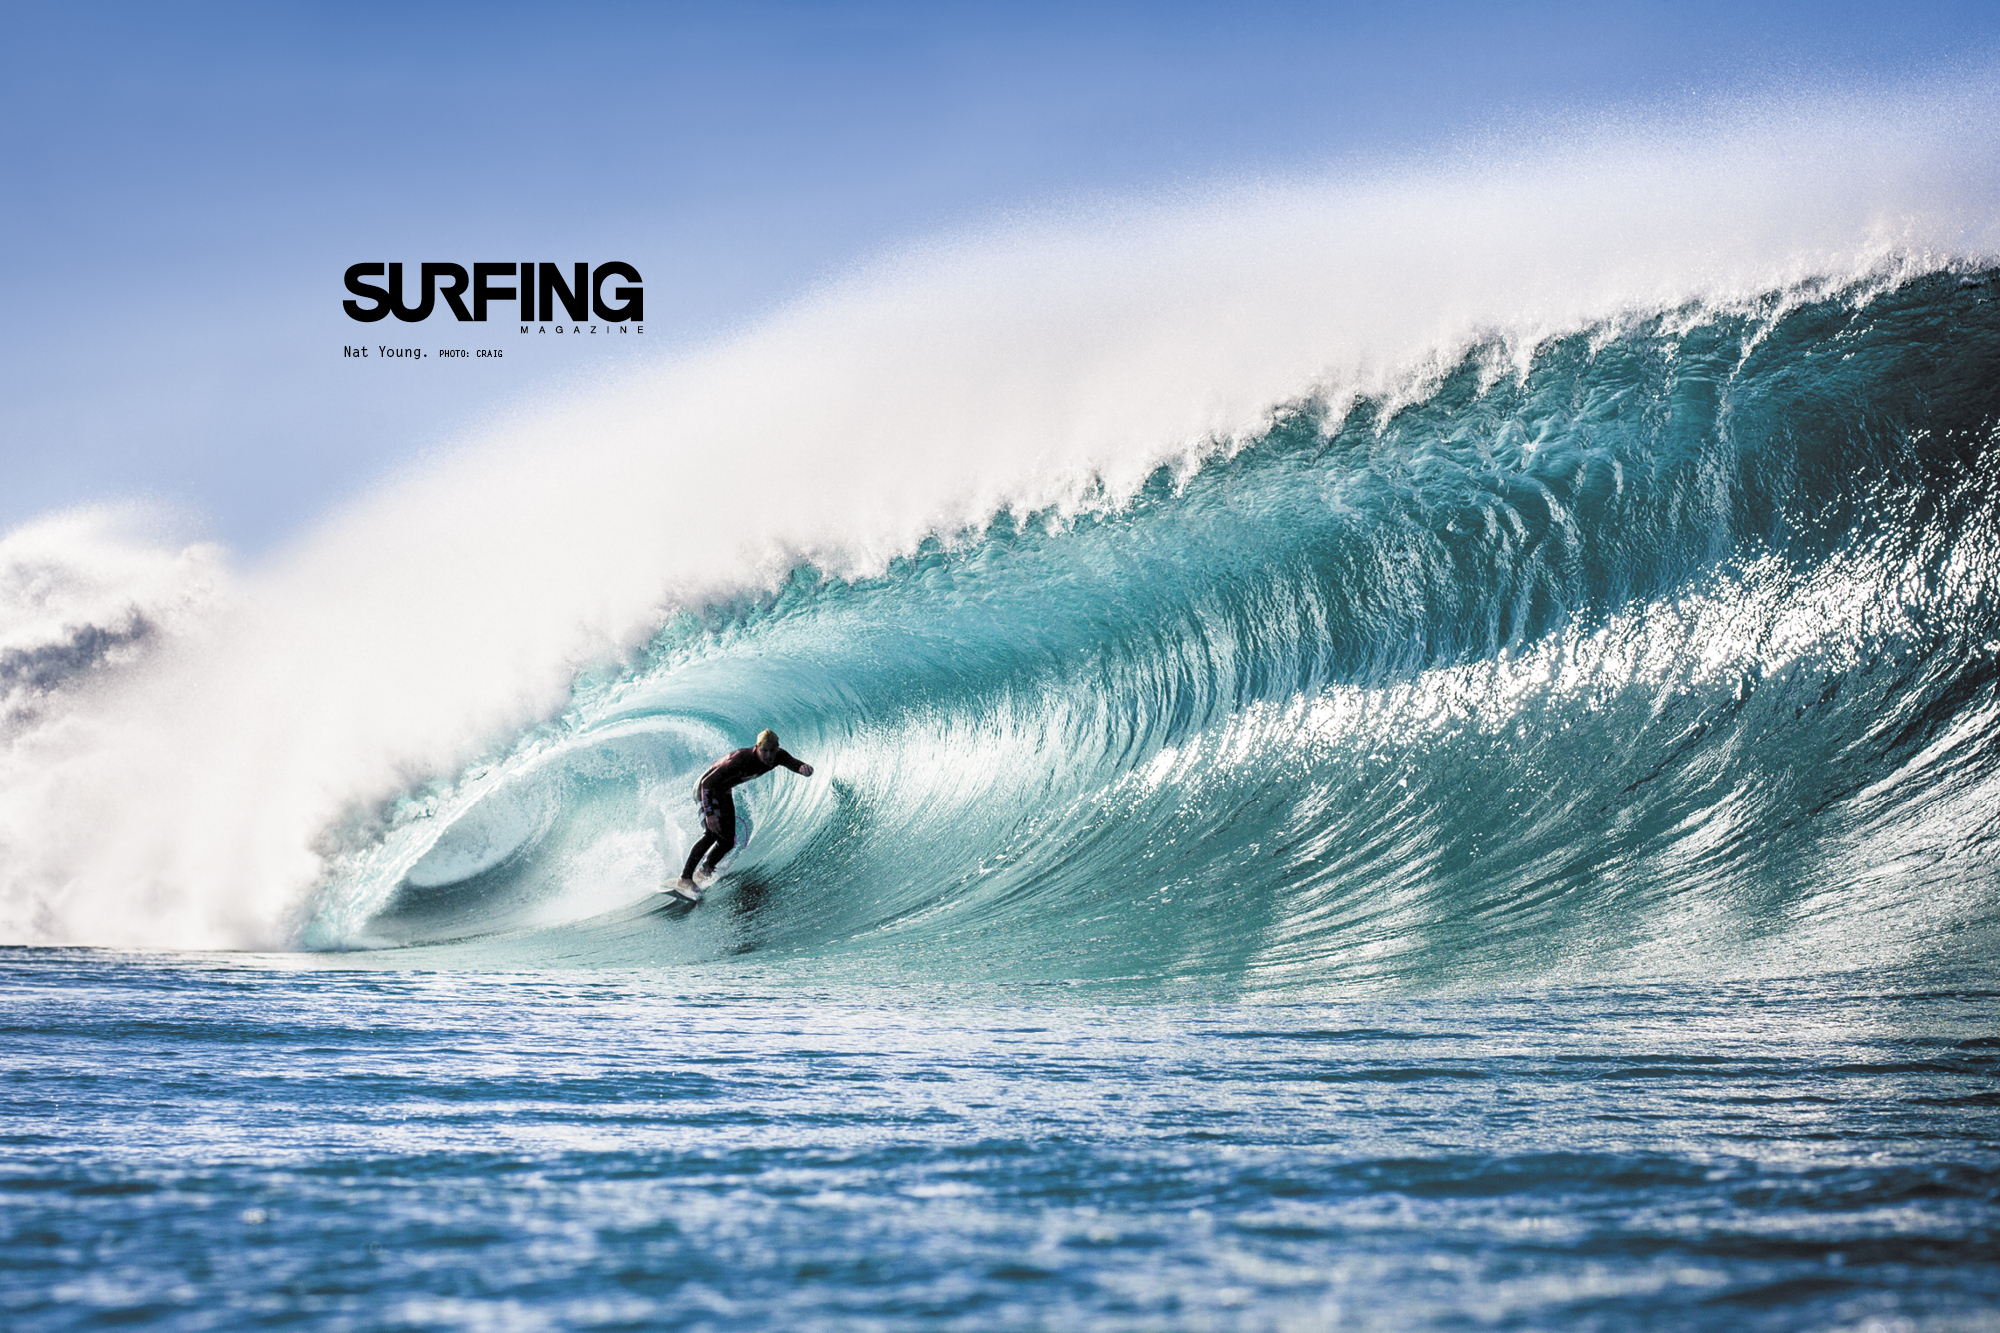 Live Wallpaper Free Iphone X Download Surfing Magazine Wallpaper Gallery